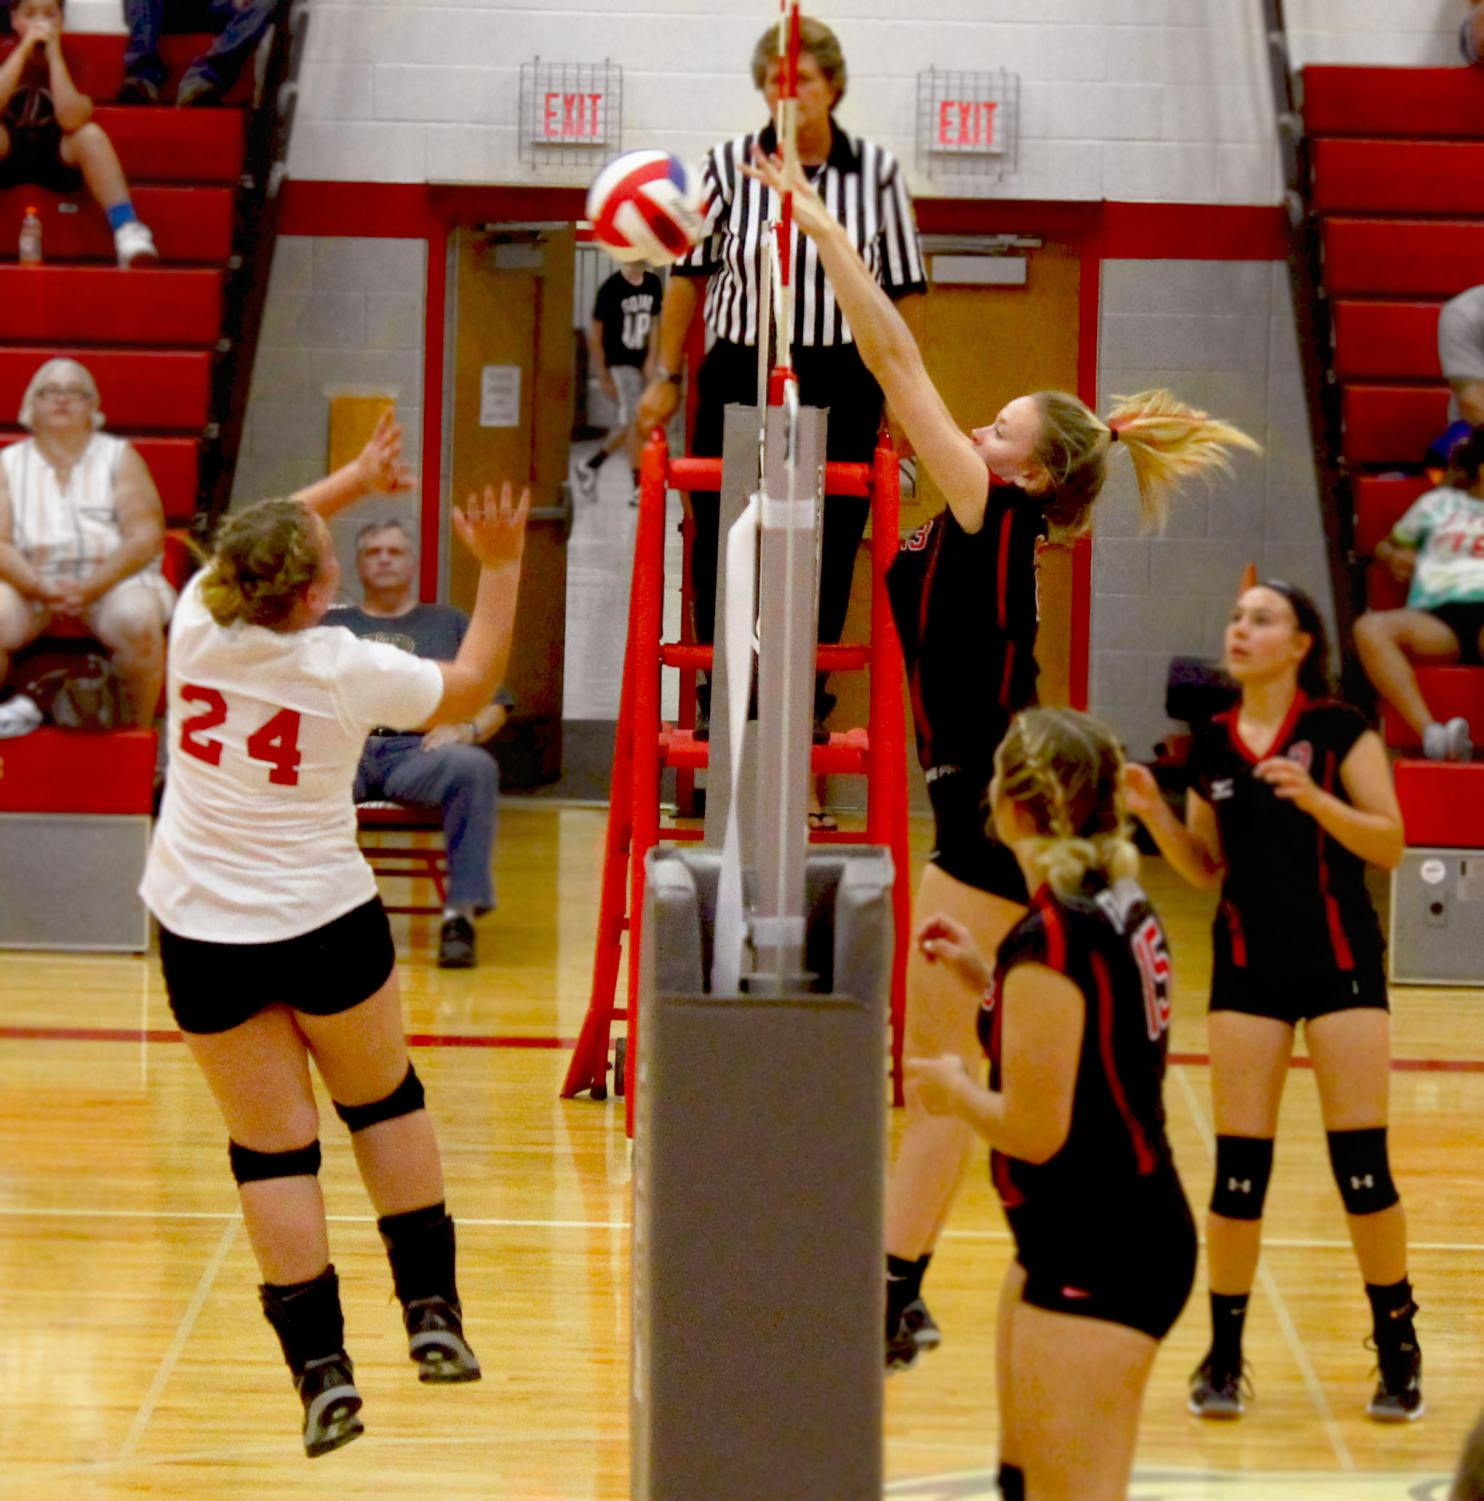 Junior Morgan Malinski jumps up from the side to block the opposing team from scoring.